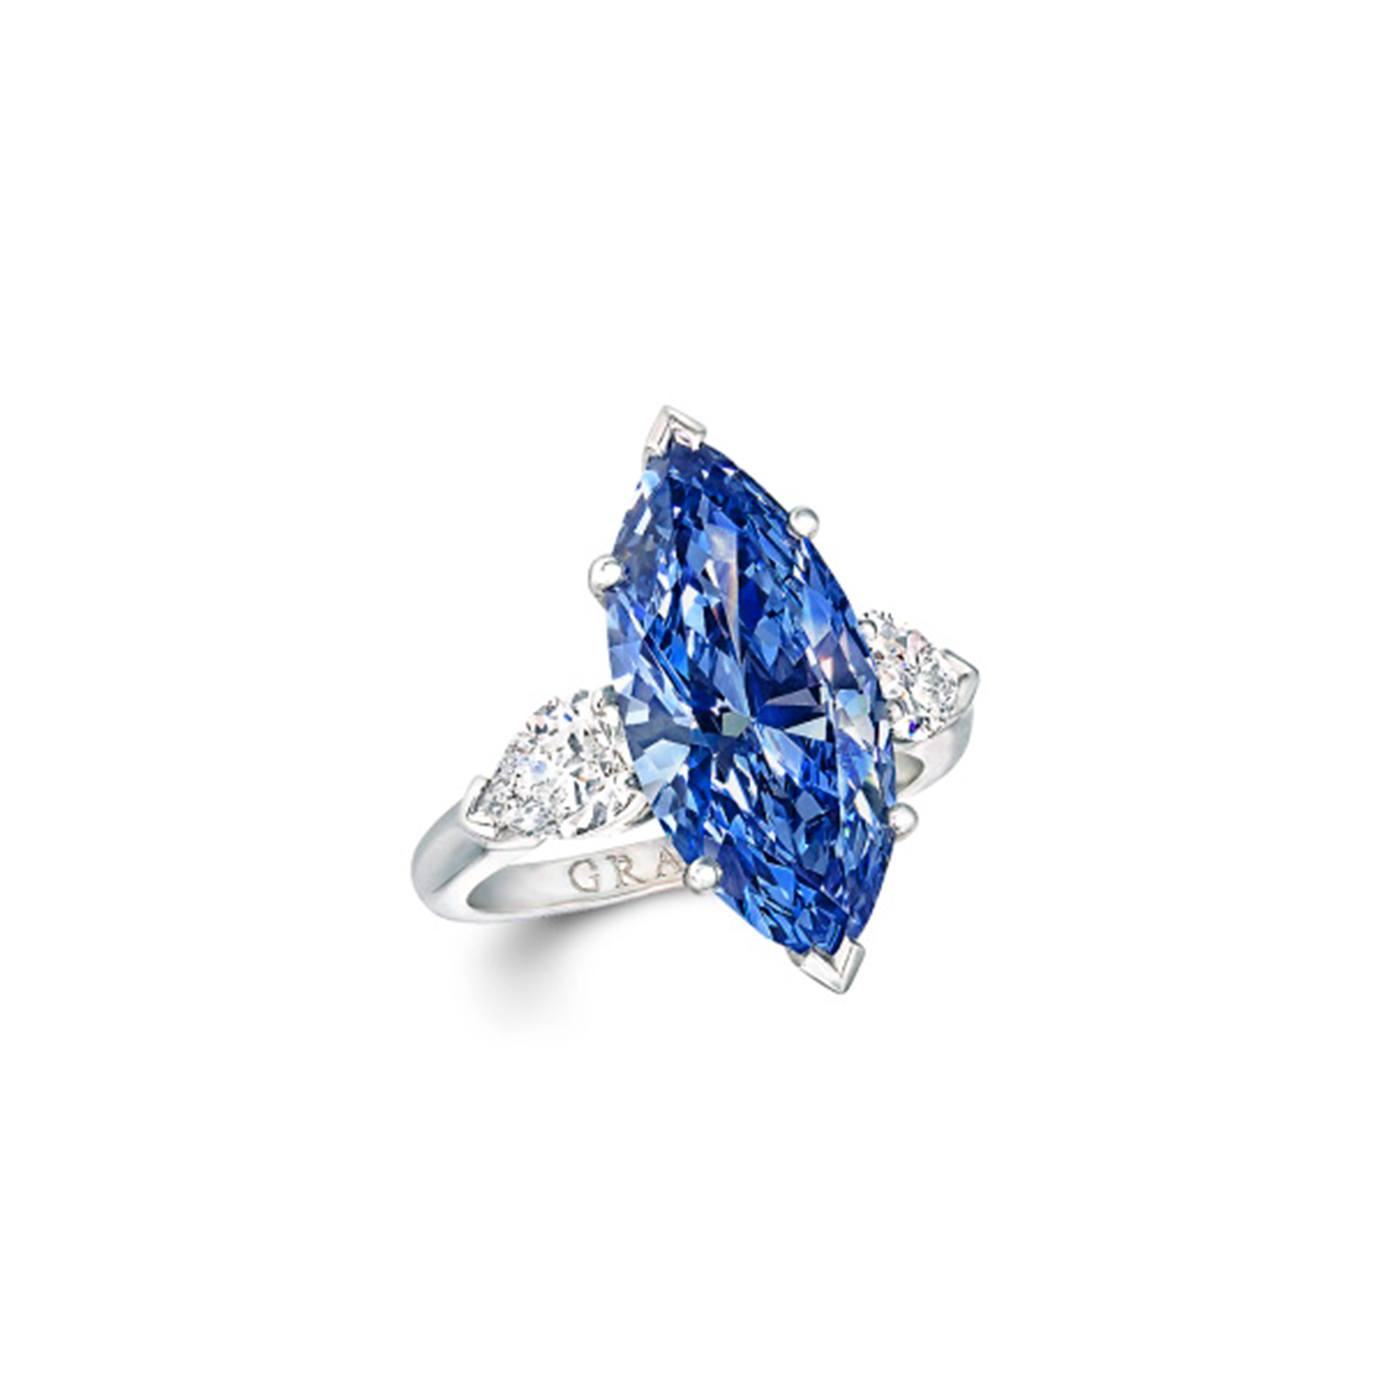 Marquise Cut Blue Diamond Ring.